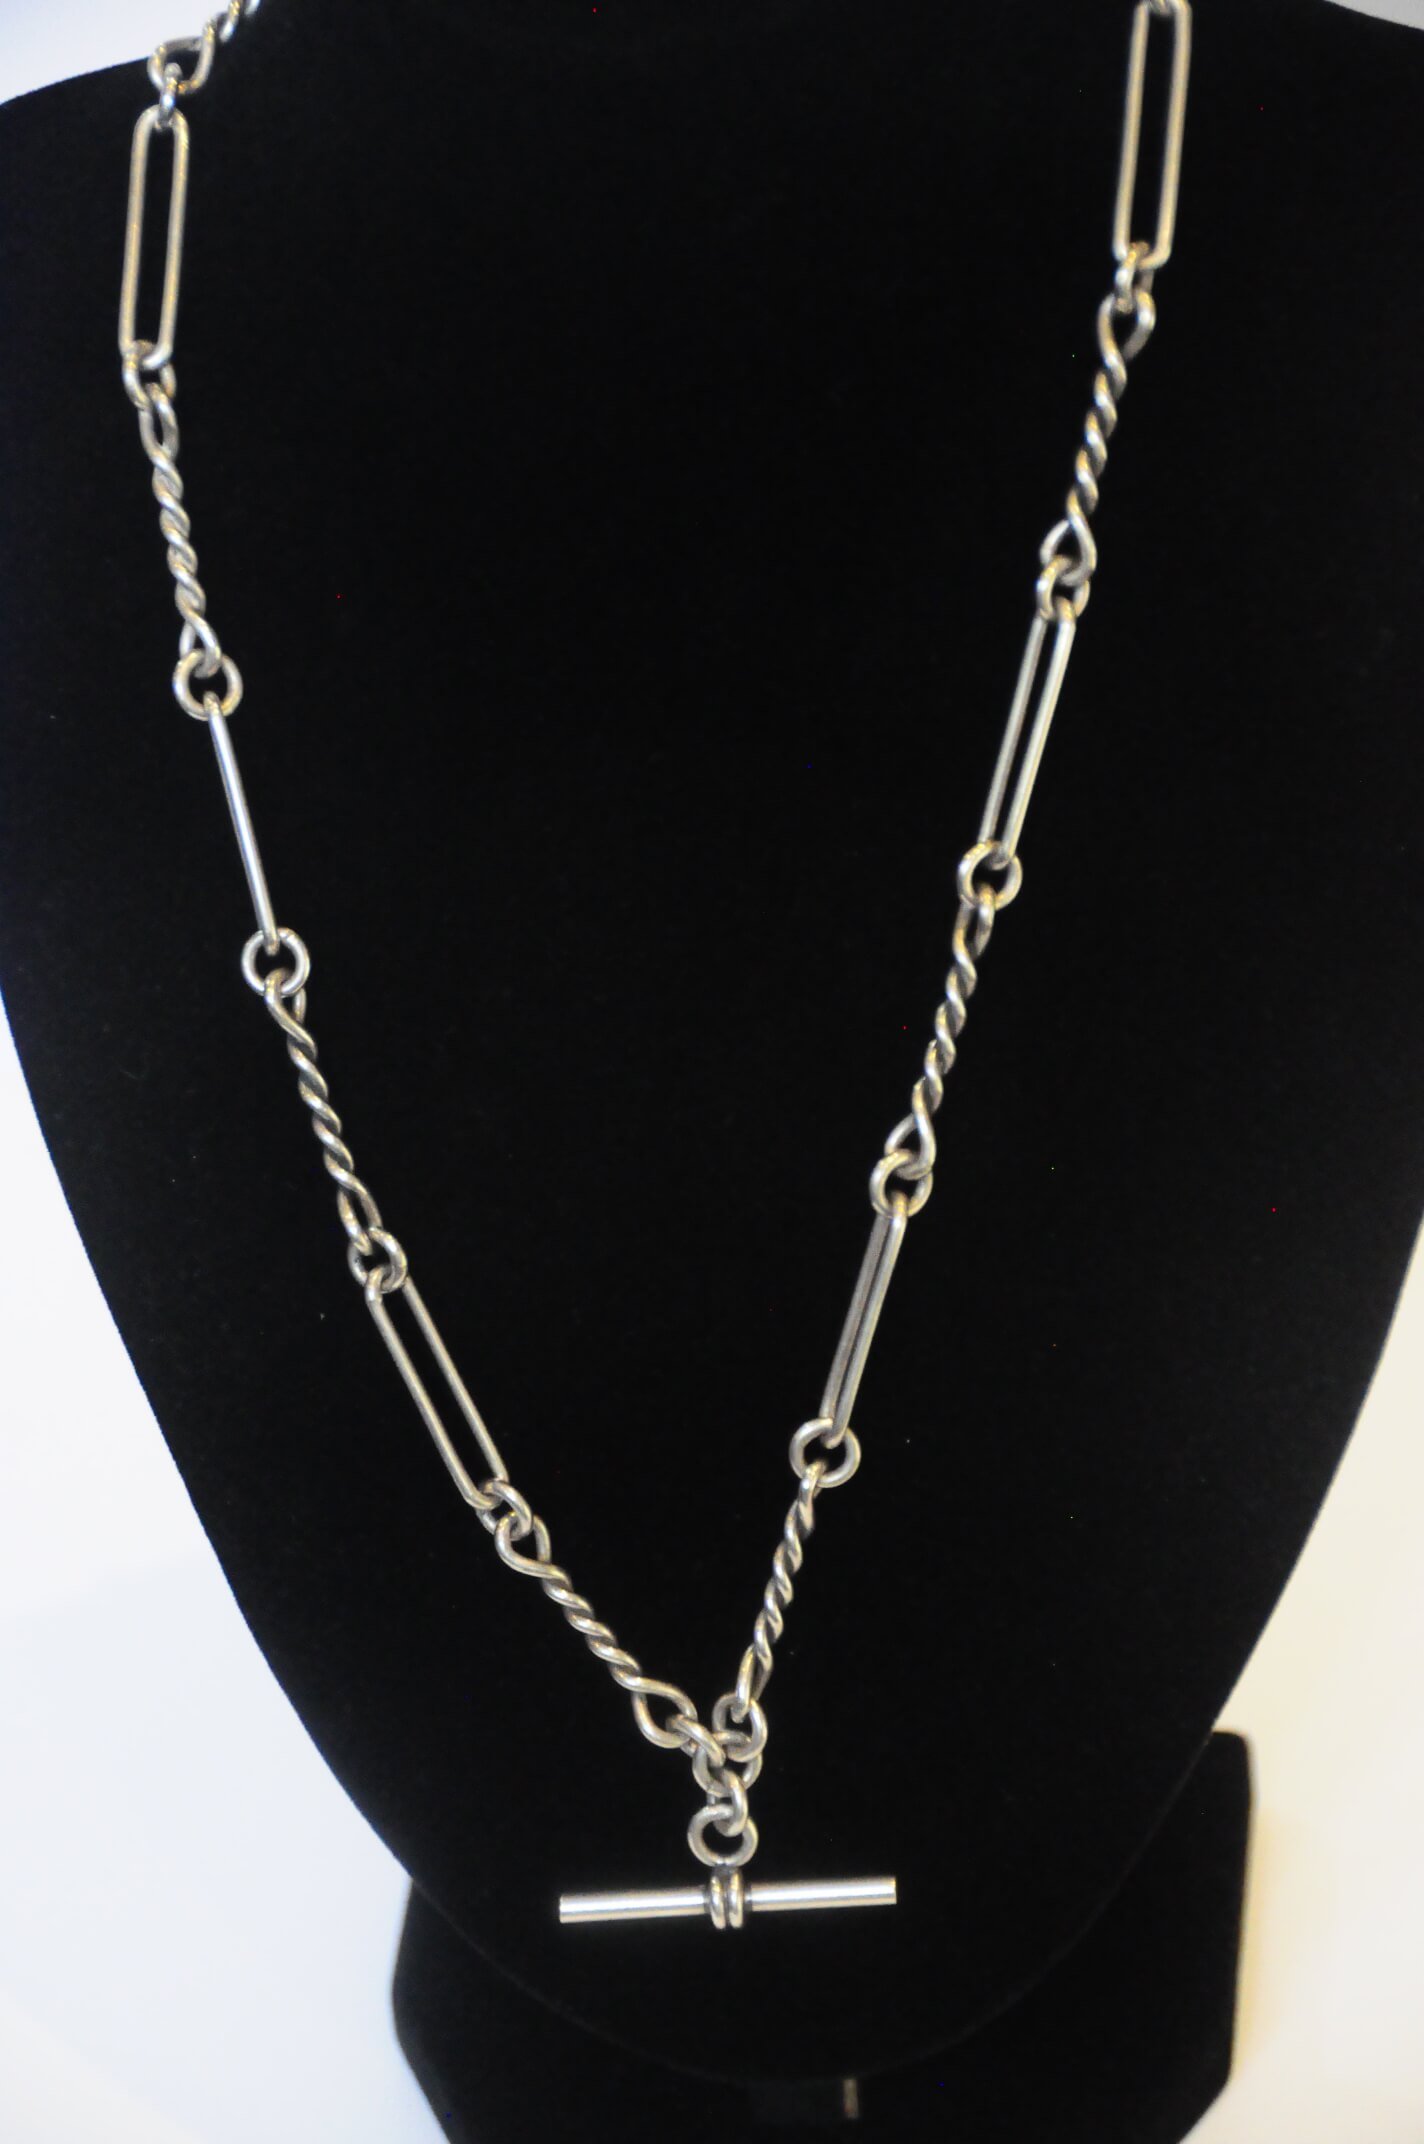 Jewelry Necklace Silver Rob Chain Albert 20'L 32.5g